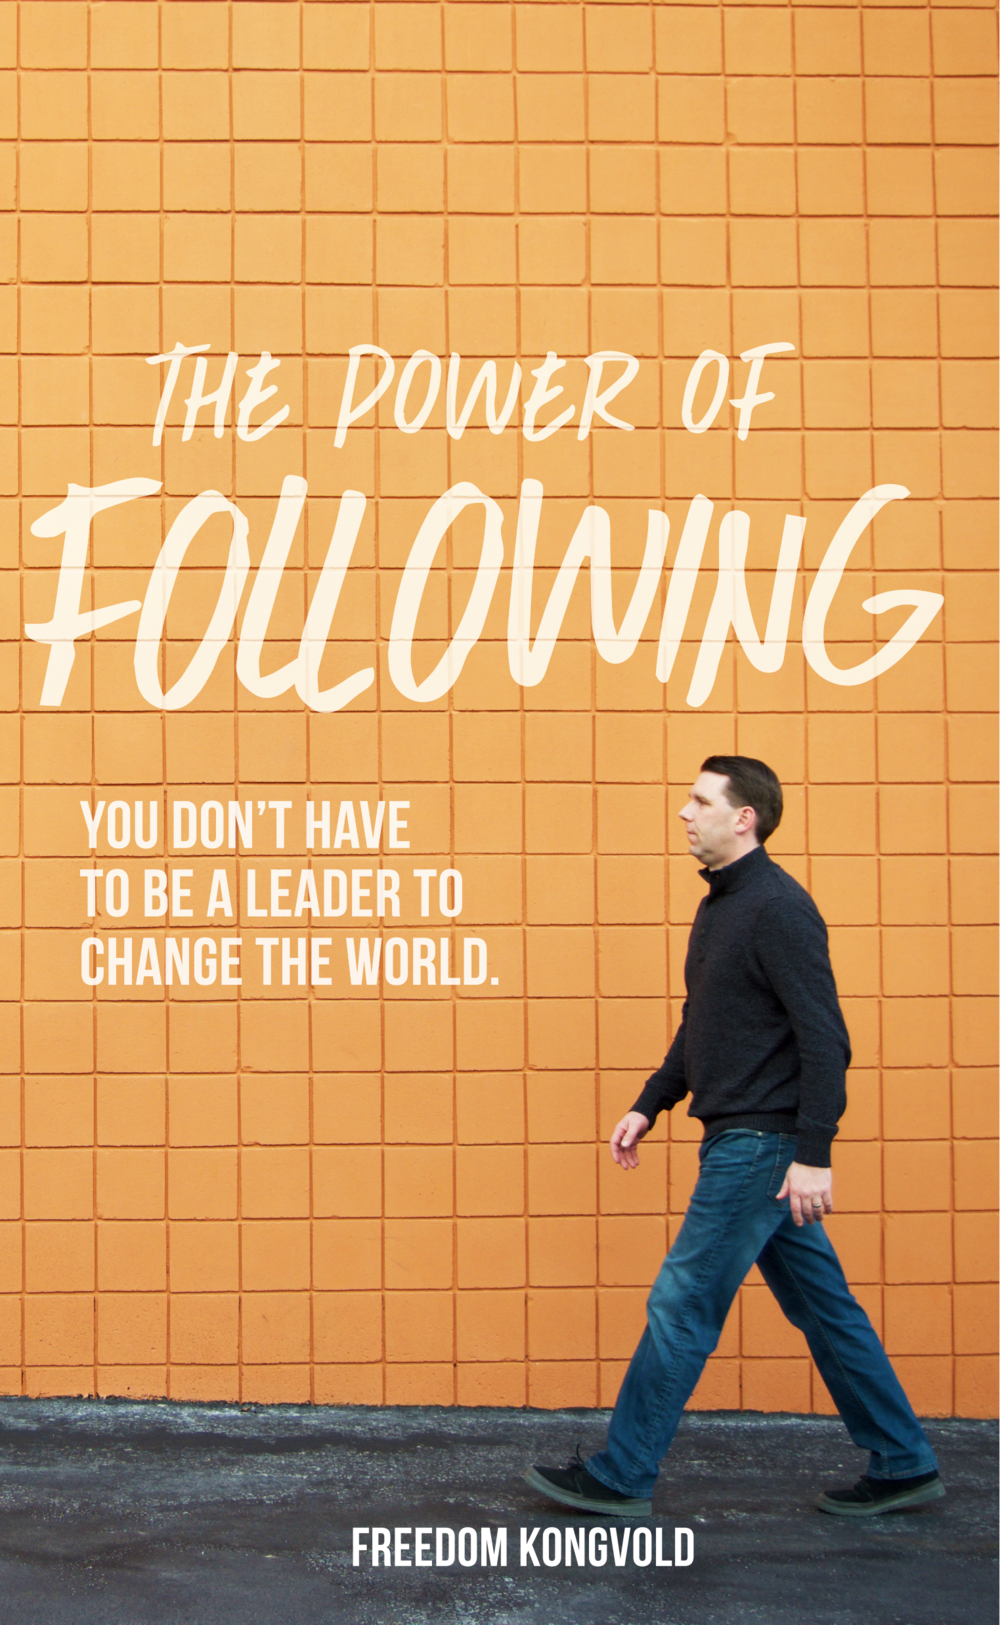 The Power of Following